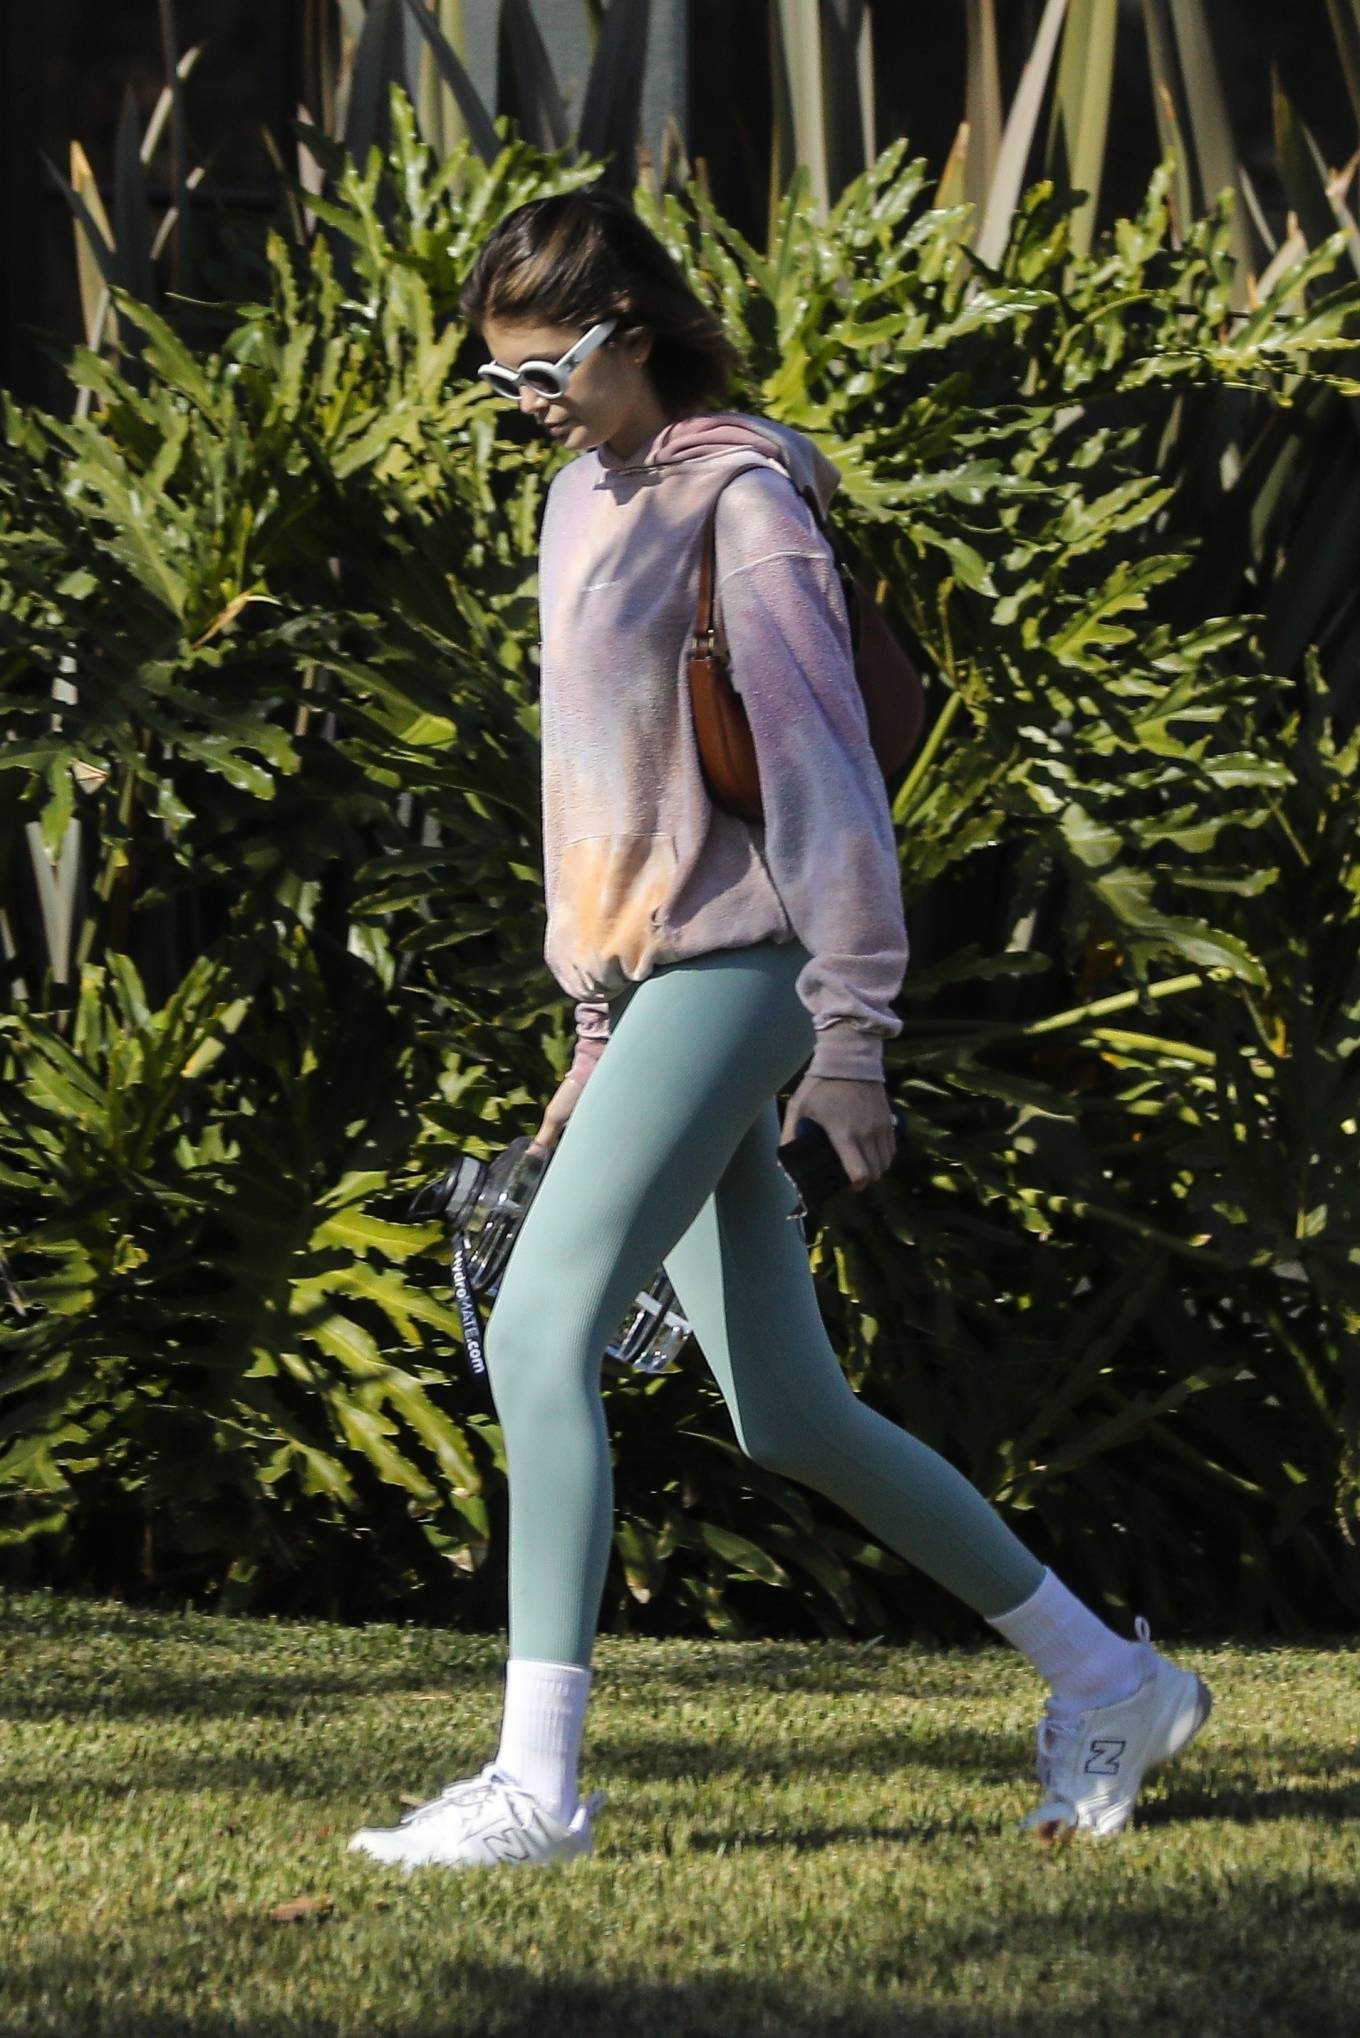 Kaia Gerber 2020 : Kaia Gerber – Seen walking her dog in Santa Monica-17